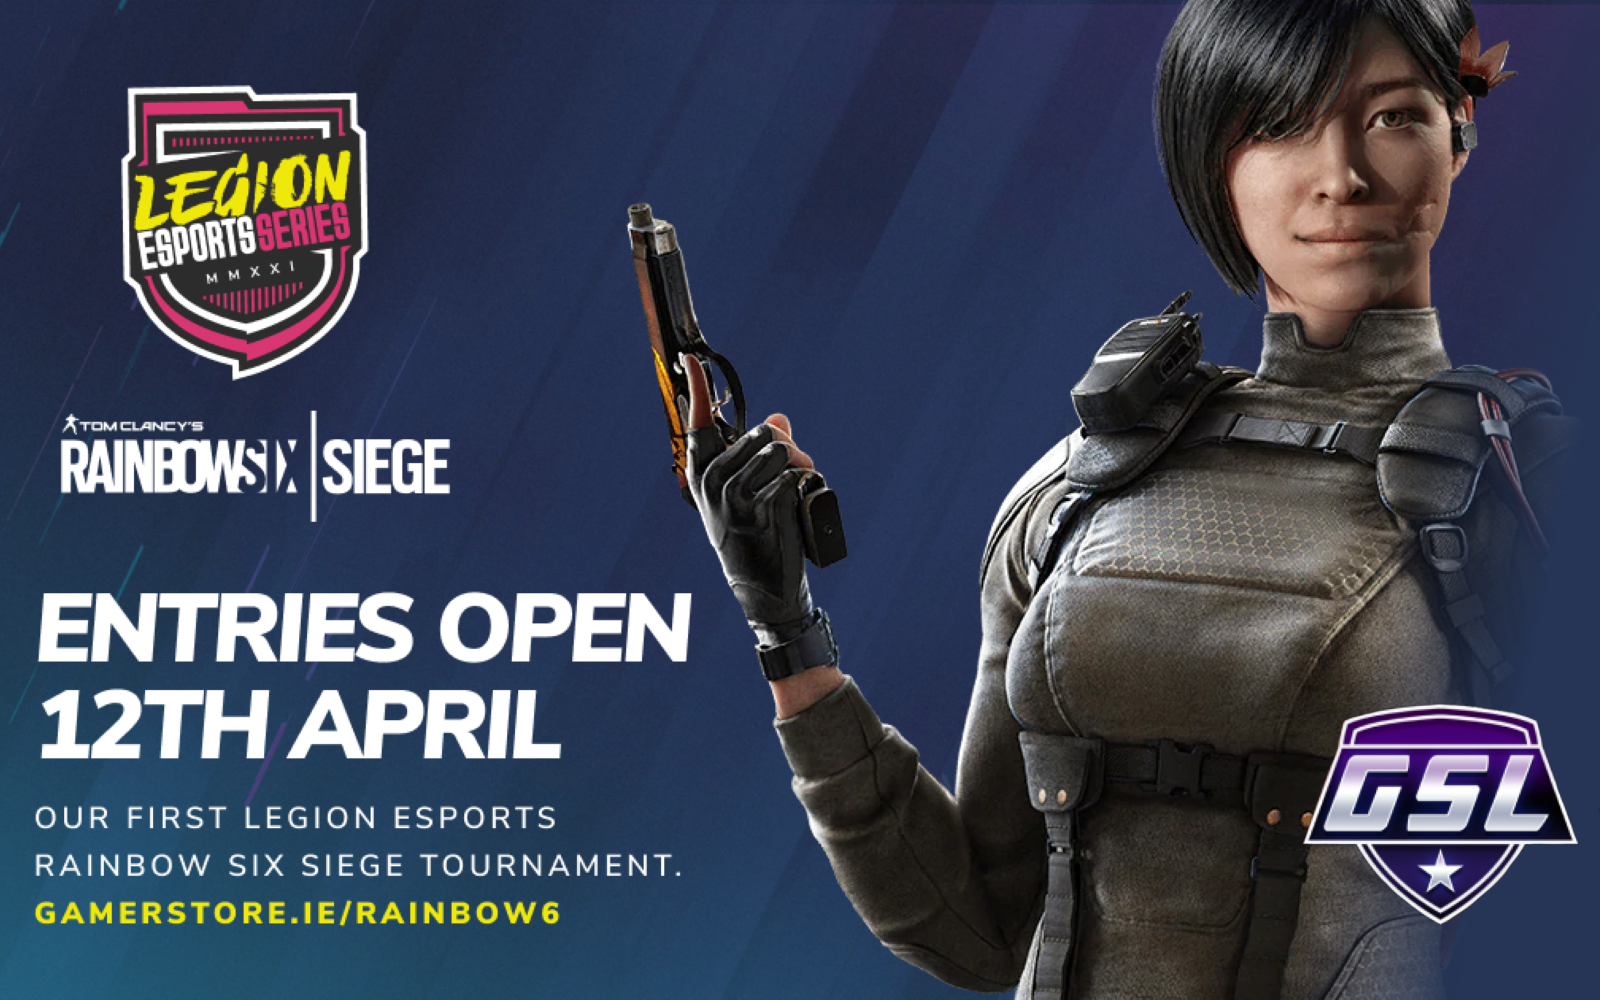 The Next Legion eSports Series Will Be A Rainbow Six Siege Event In May